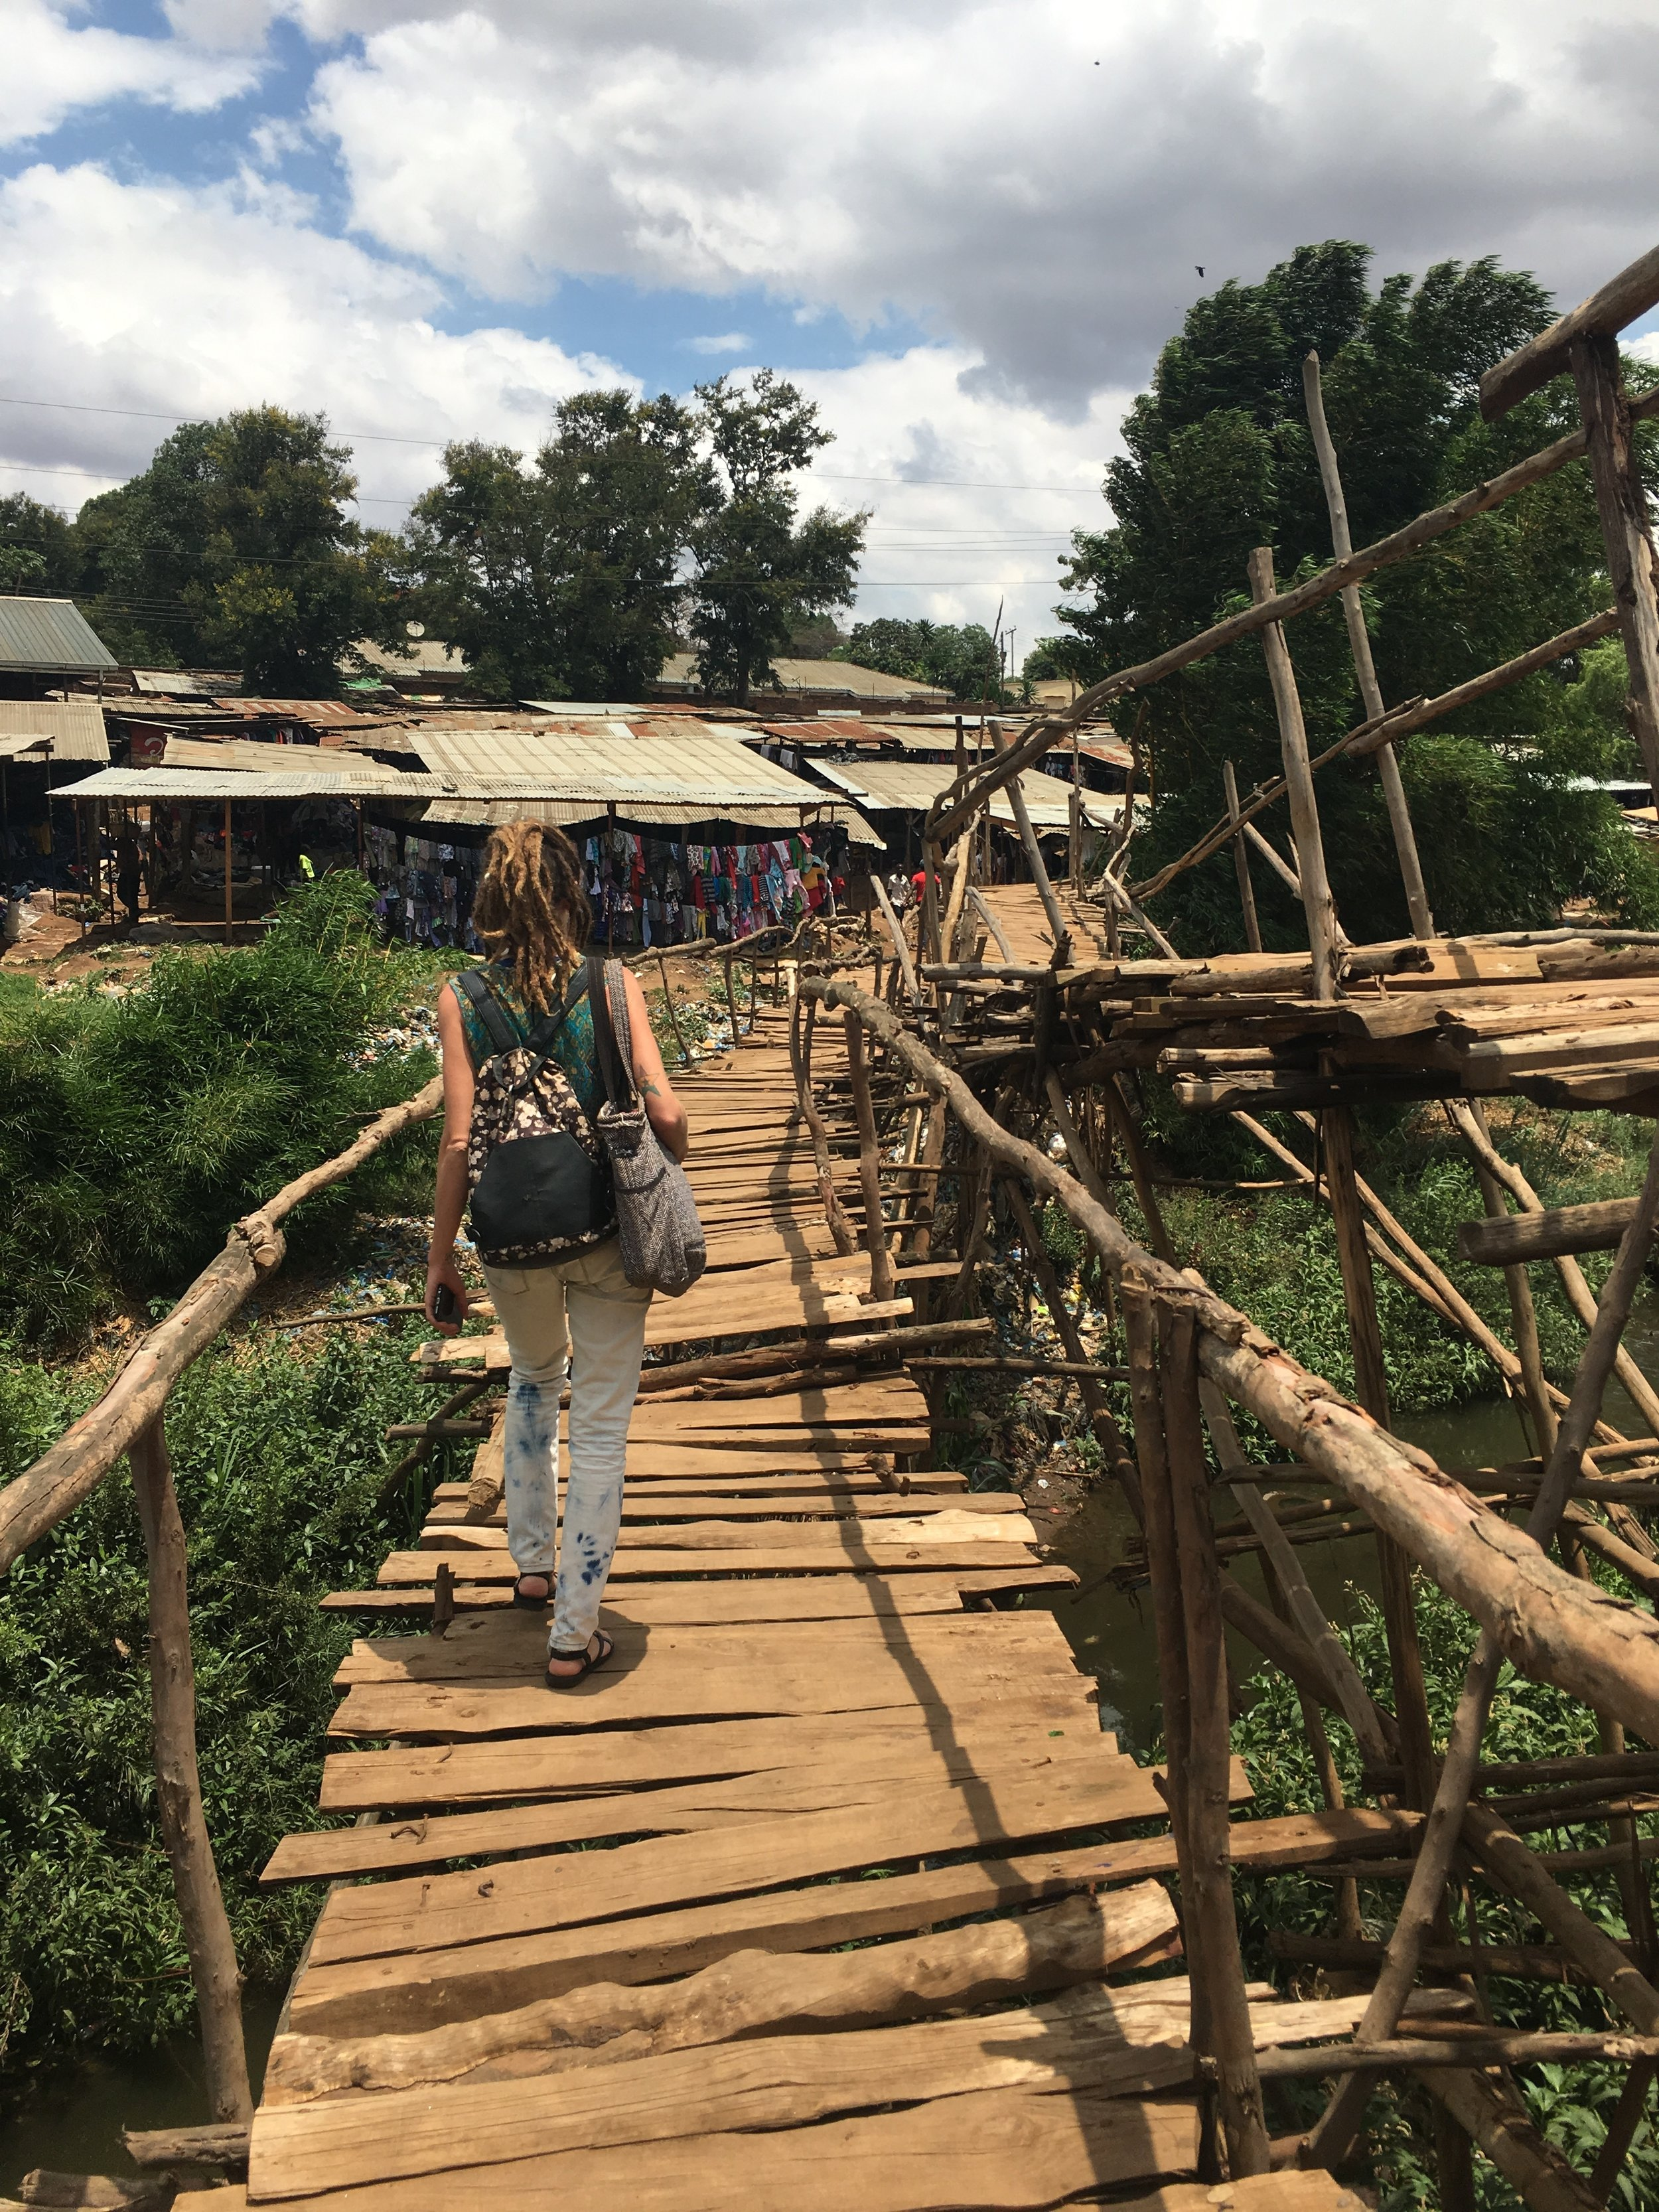 GHF Angela crossing the footbridge at the market.